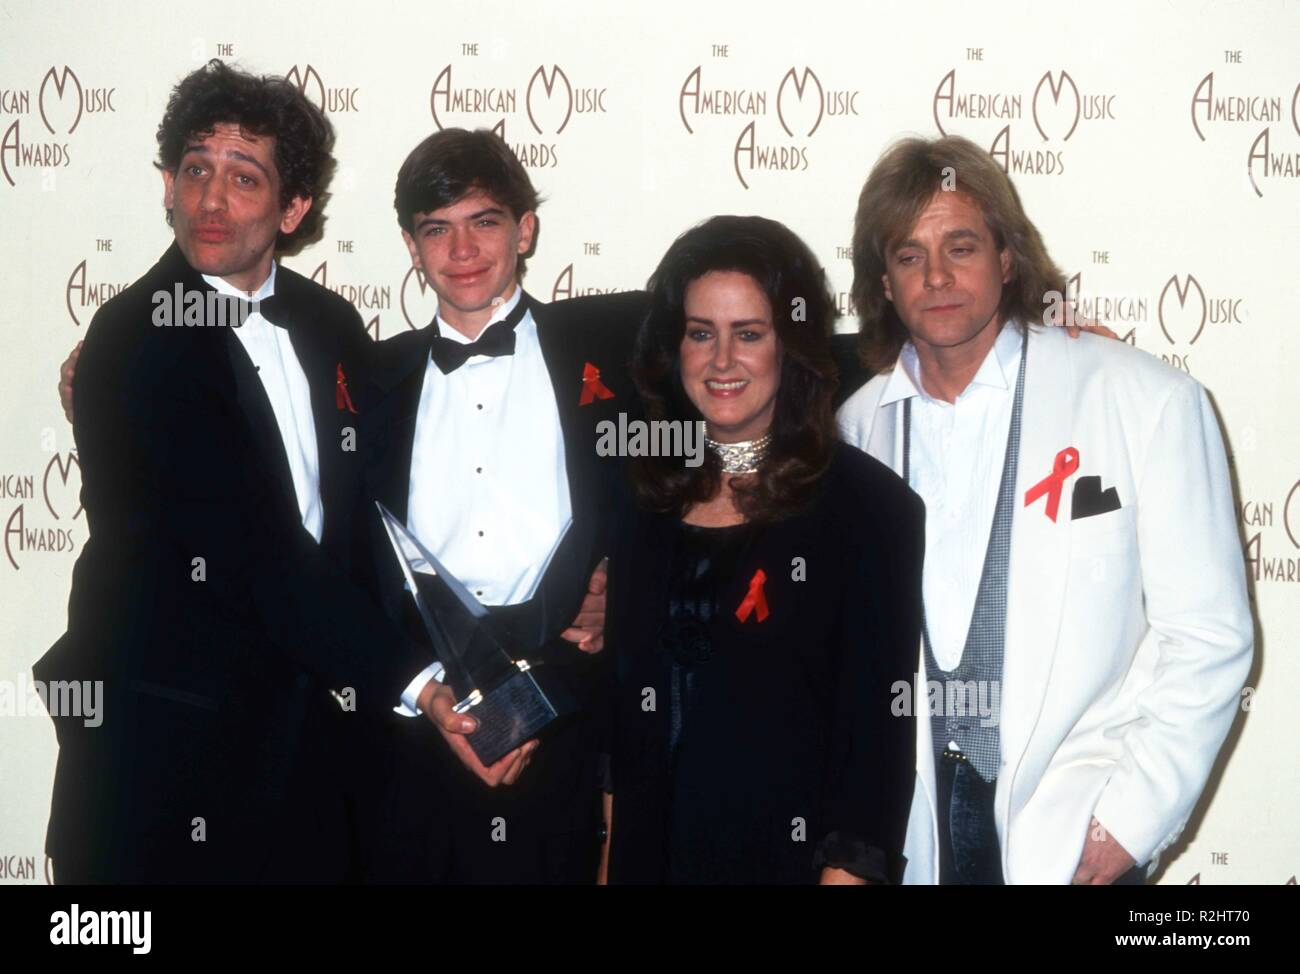 LOS ANGELES, CA - JANUARY 25: Singer Grace Slick and singer Eddie Money attend the 20th Annual American Music Awards on January 25, 1993 at the Shrine Auditorium in Los Angeles, California. Photo by Barry King/Alamy Stock Photo - Stock Image